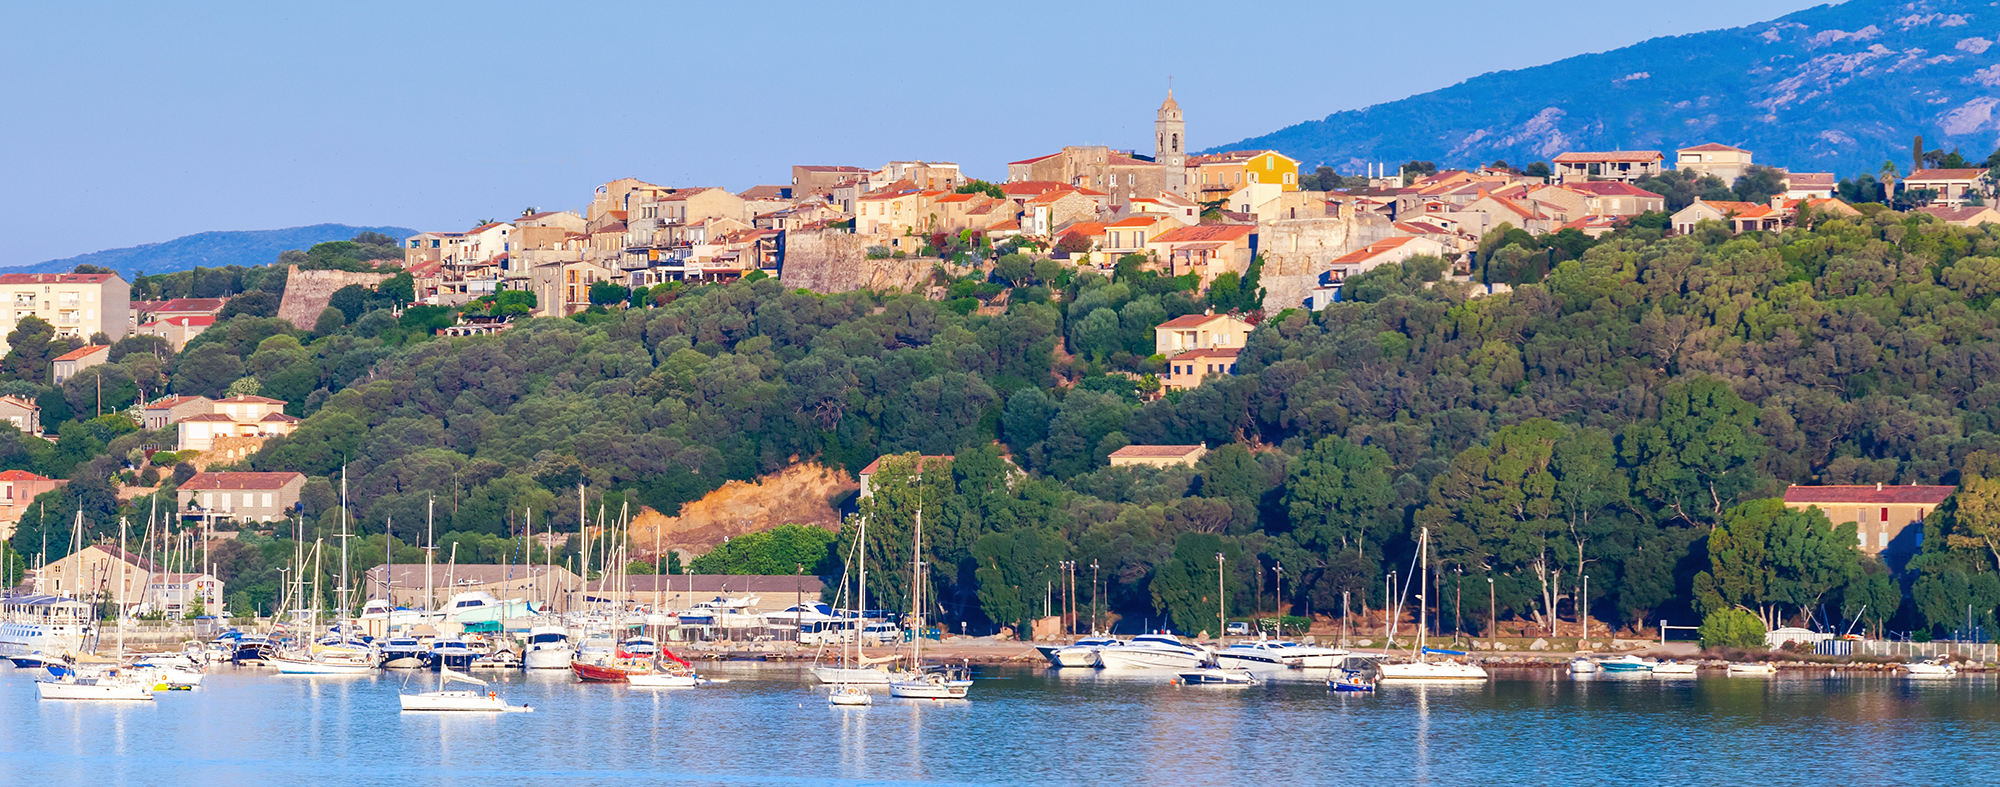 porto vecchio yacht charters the complete 2018 2019 guide by charterworld. Black Bedroom Furniture Sets. Home Design Ideas